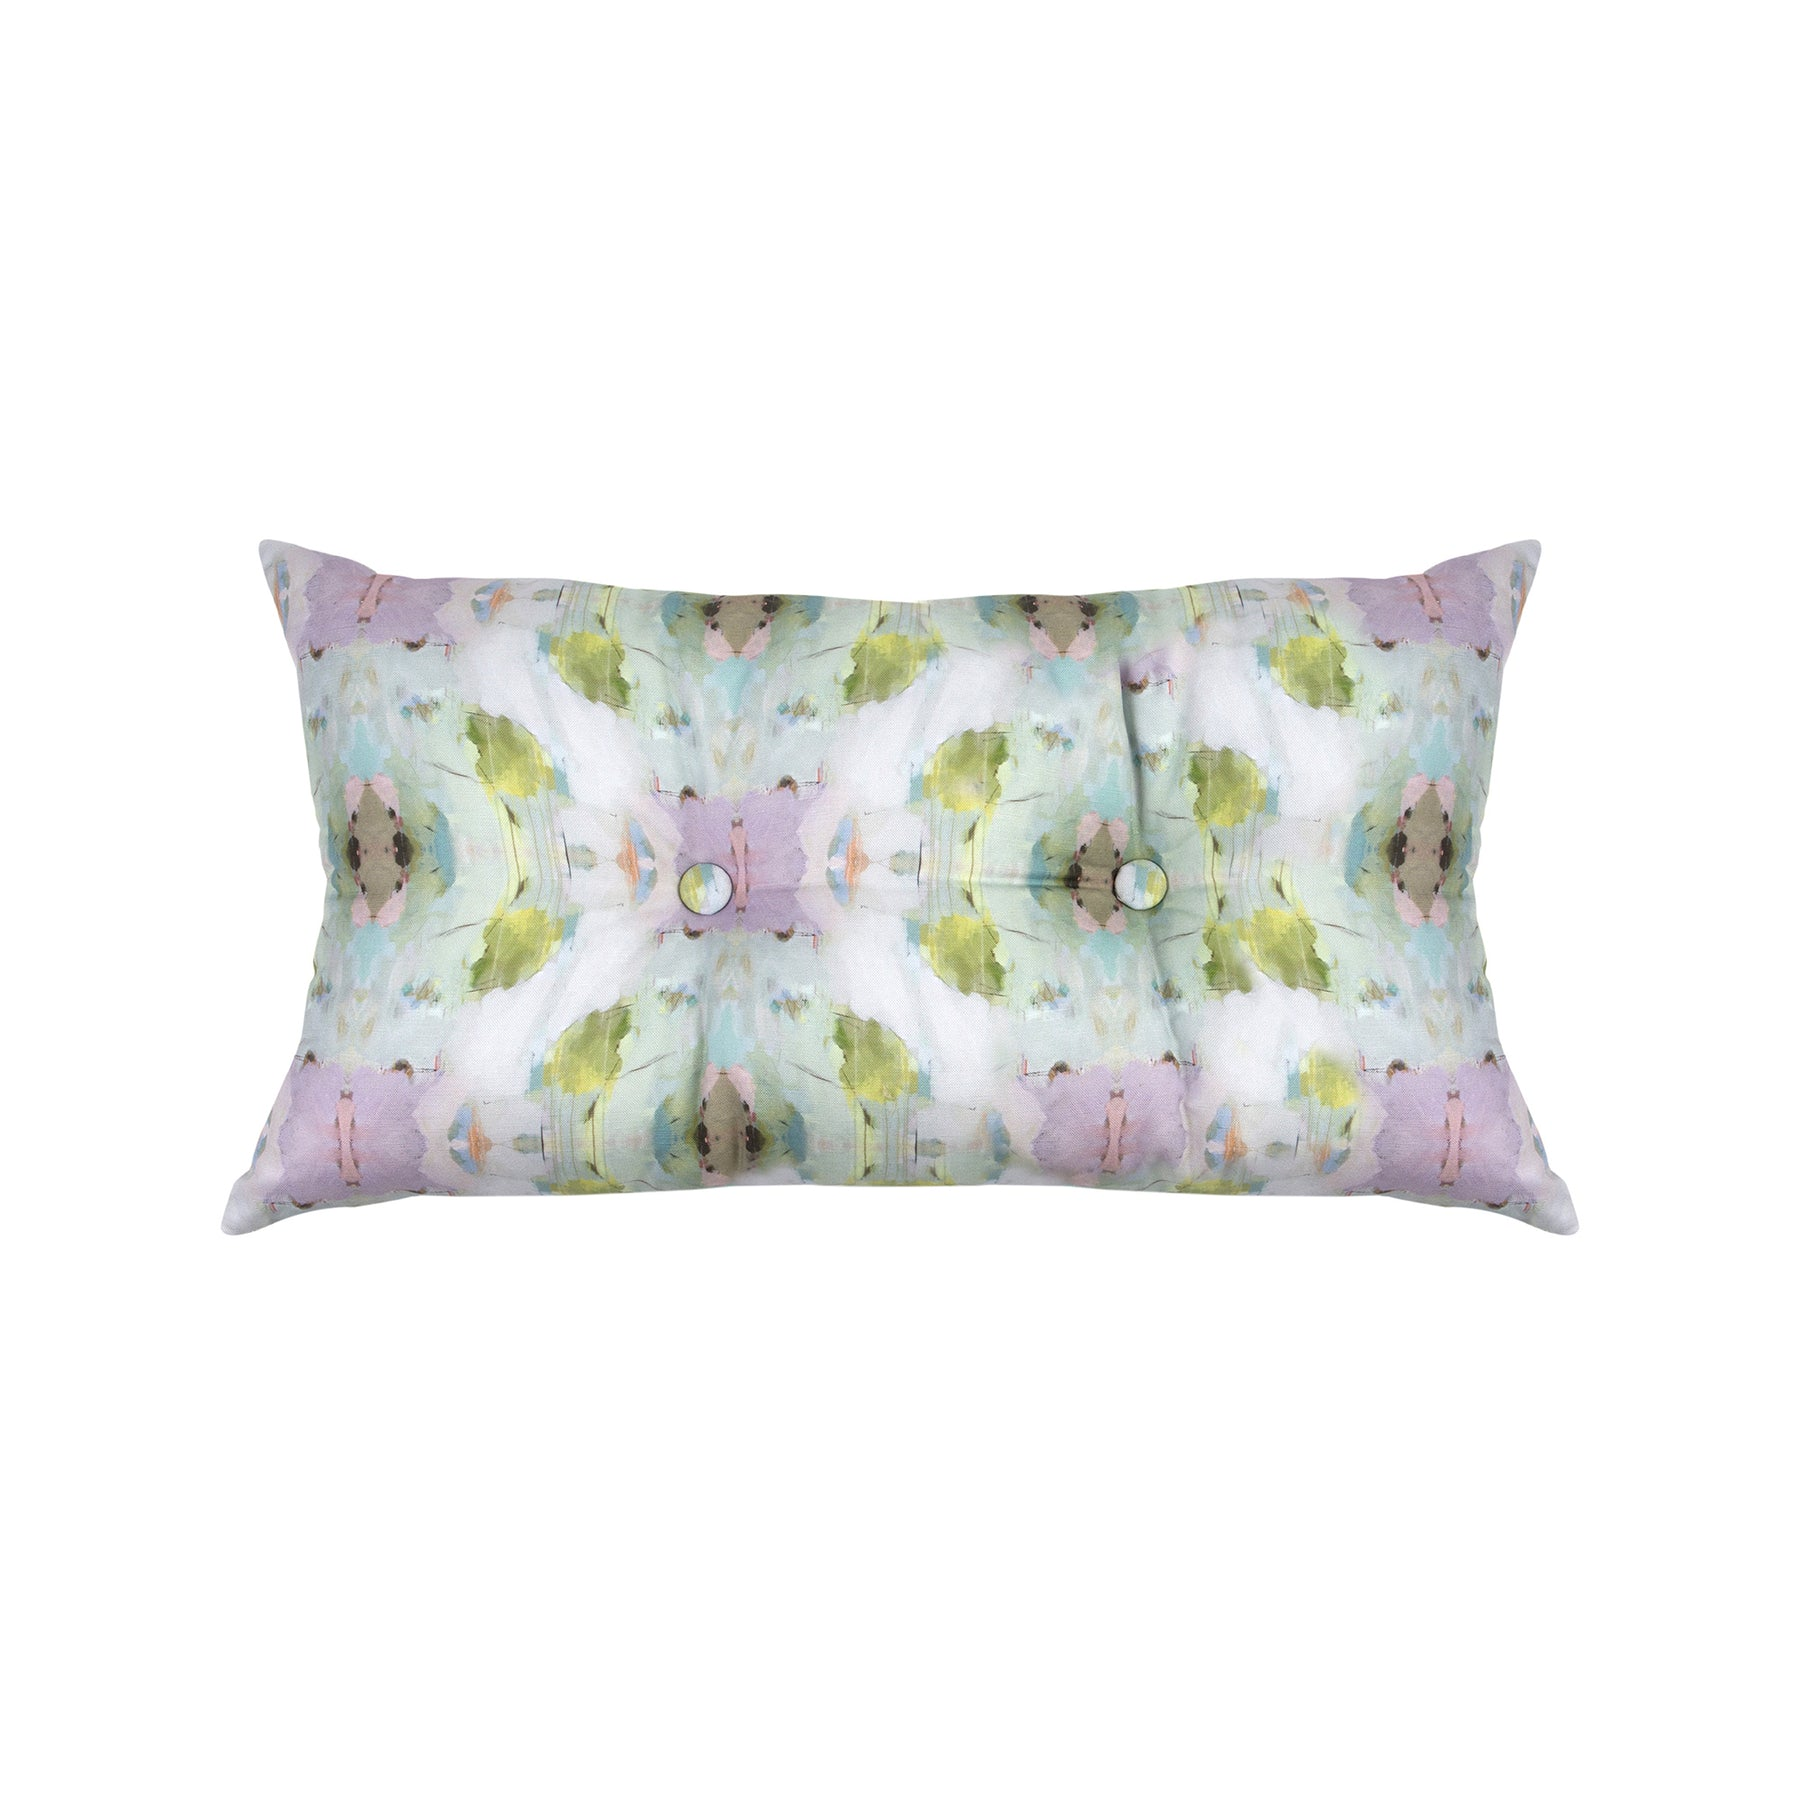 soopee stylish bohemian cool boho peach covers colorful decor pillows throw living pillow couch room decorative